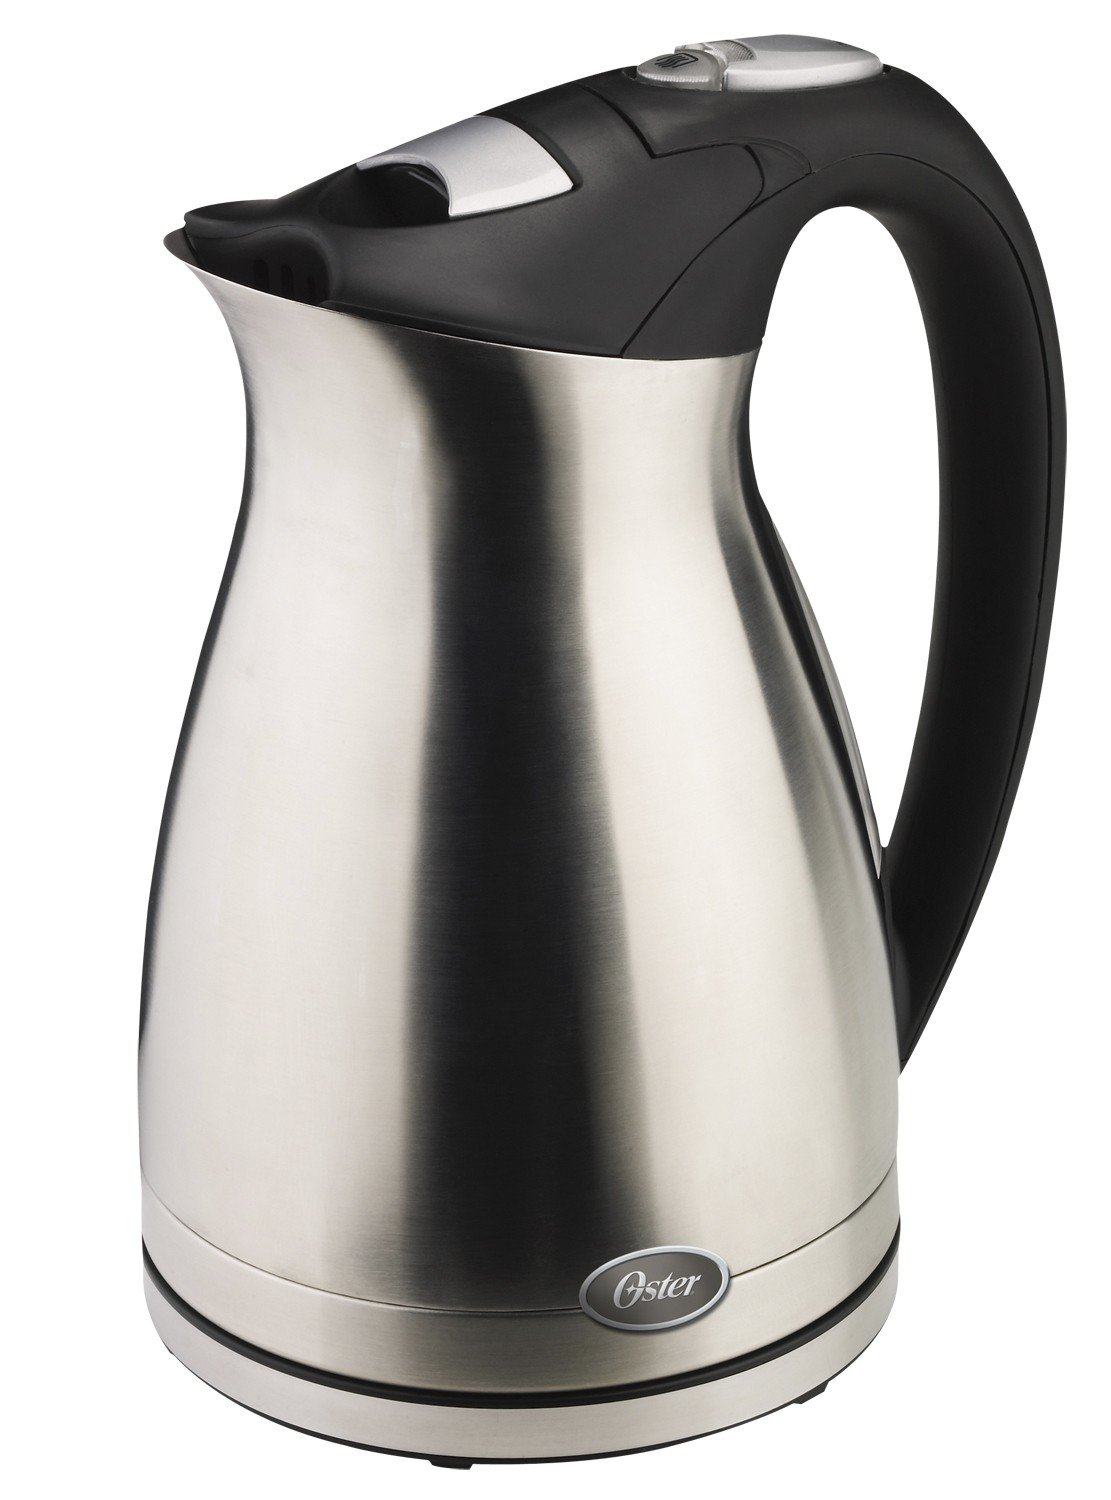 Oster 5965 1-1/2-Liter Electric Water Kettle, Stainless Steel